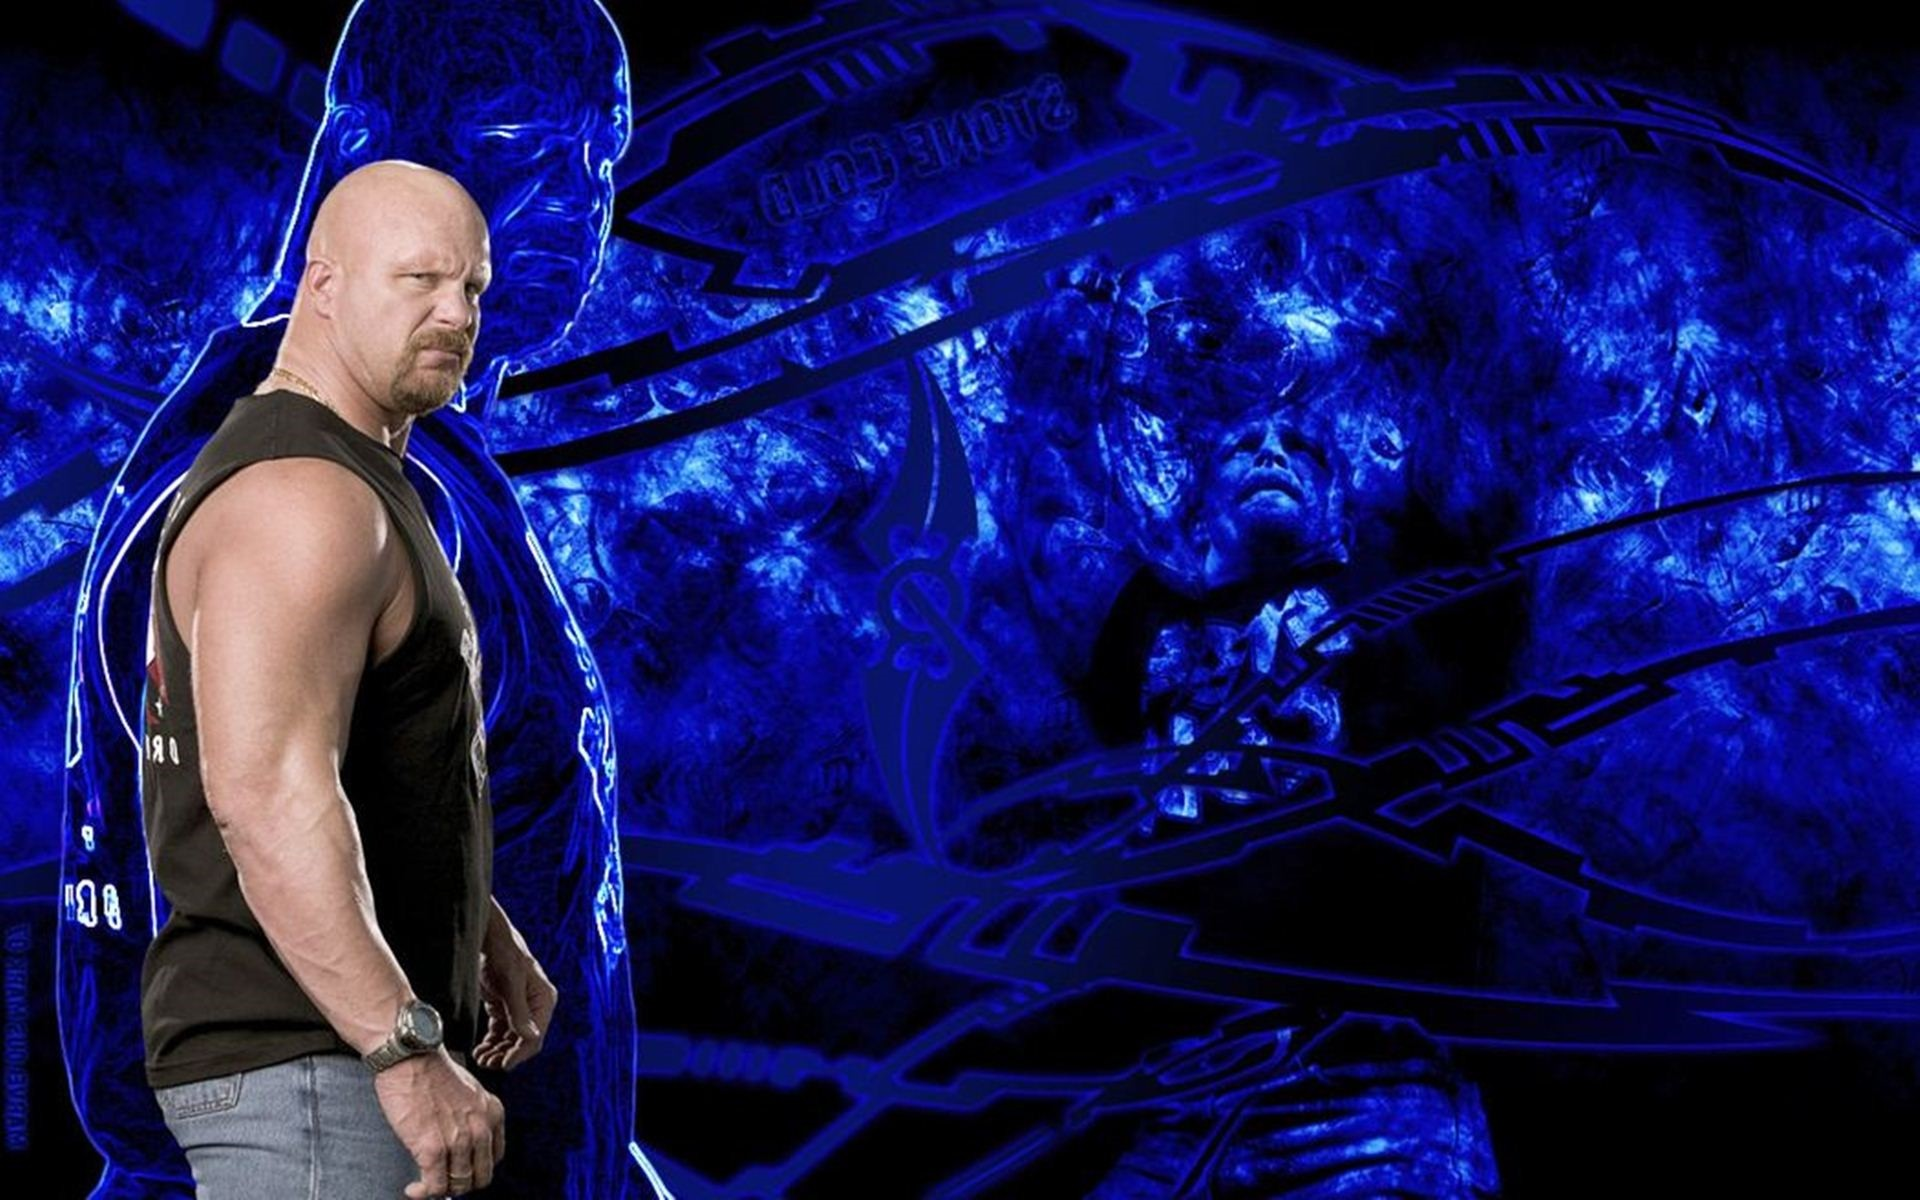 1920x1200 stone-cold-steve-austin-hd-images-8 | Stone Cold Steve Austin HD Images |  Pinterest | Stone cold steve, Steve austin and Hd images